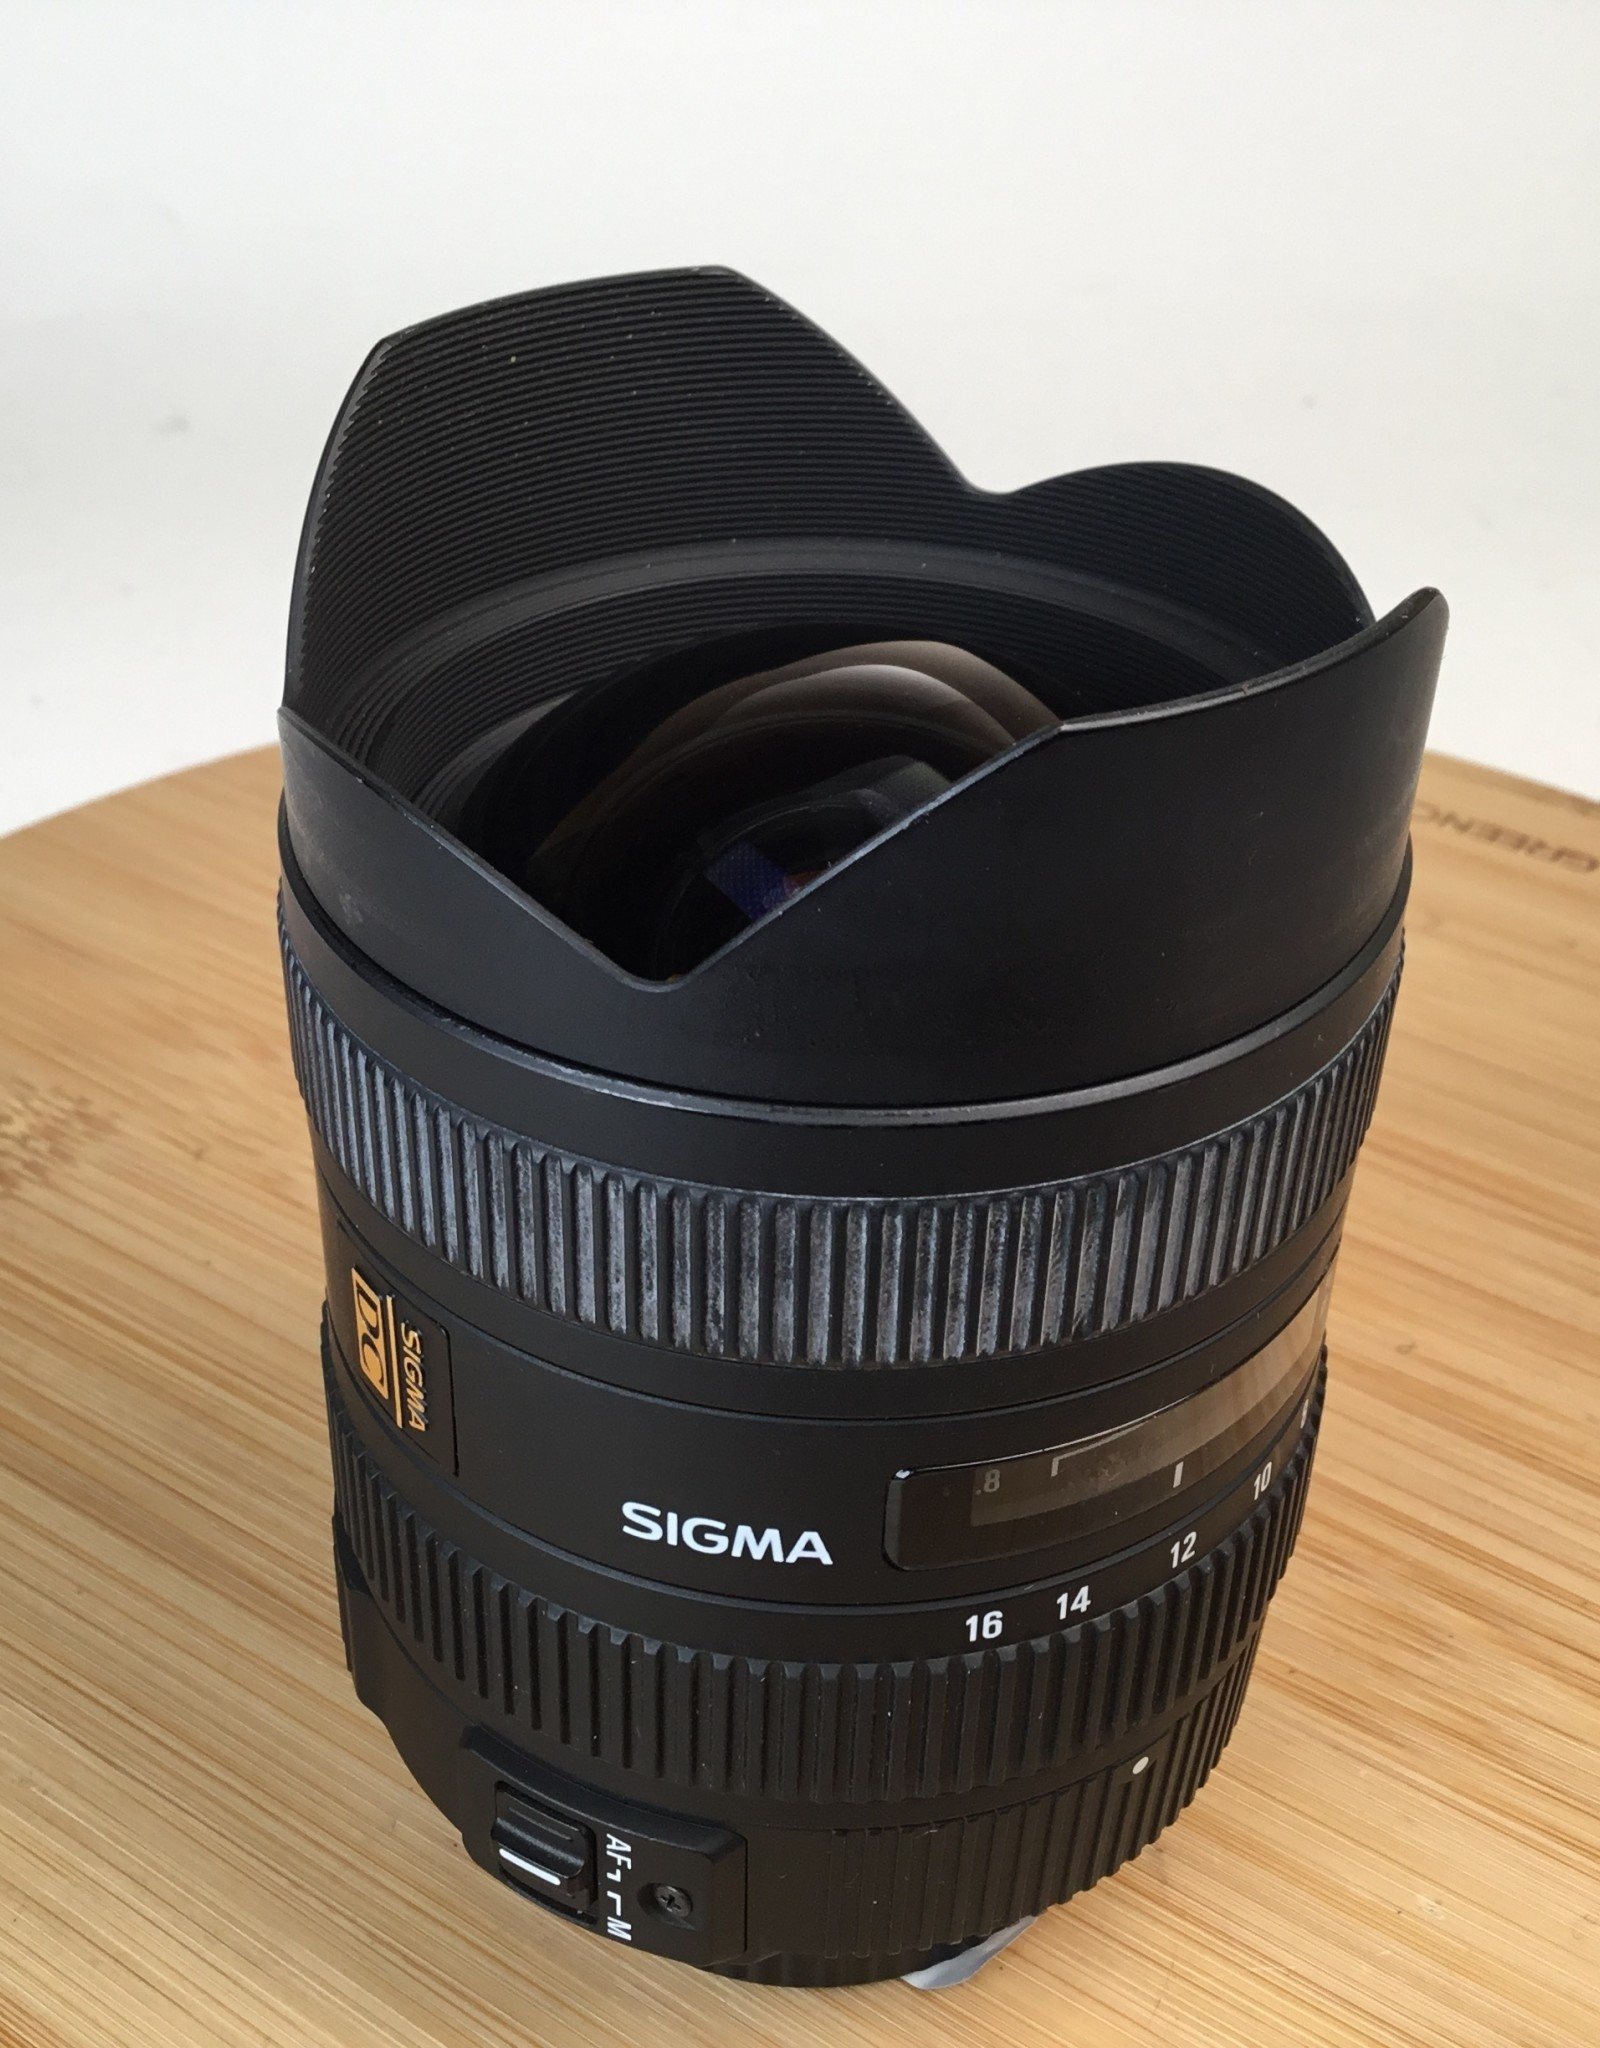 SIGMA Sigma 8-16mm f4.5-5.6 HSM for Pentax Used EX-